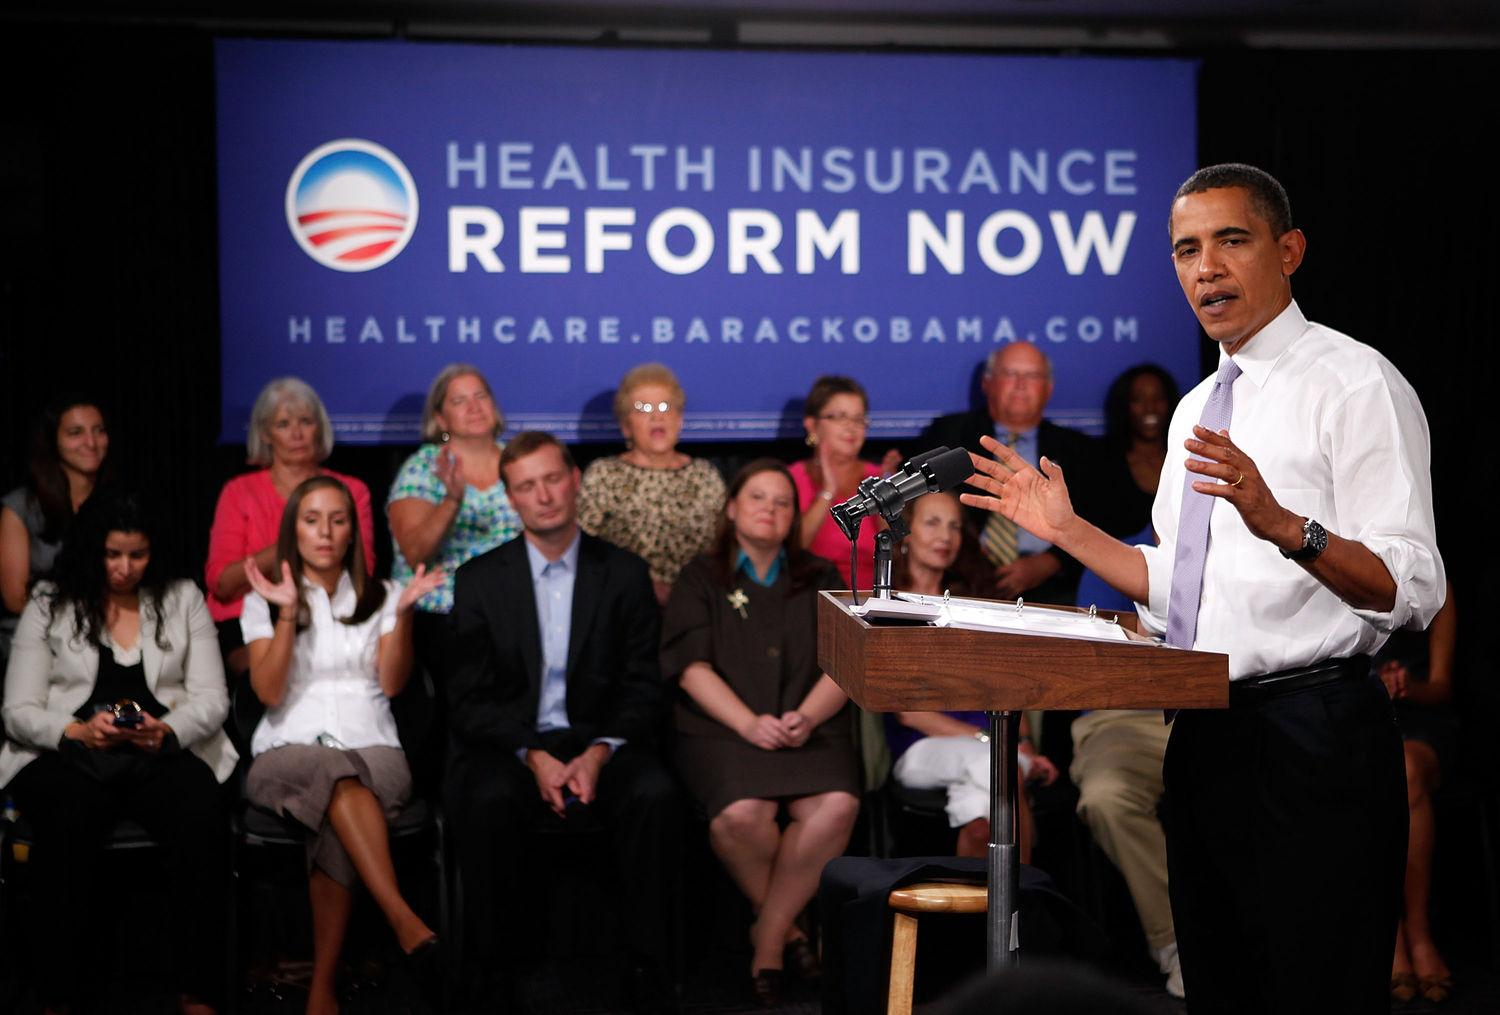 The History of Obamacare - How president Obama reformed the health system in the USA